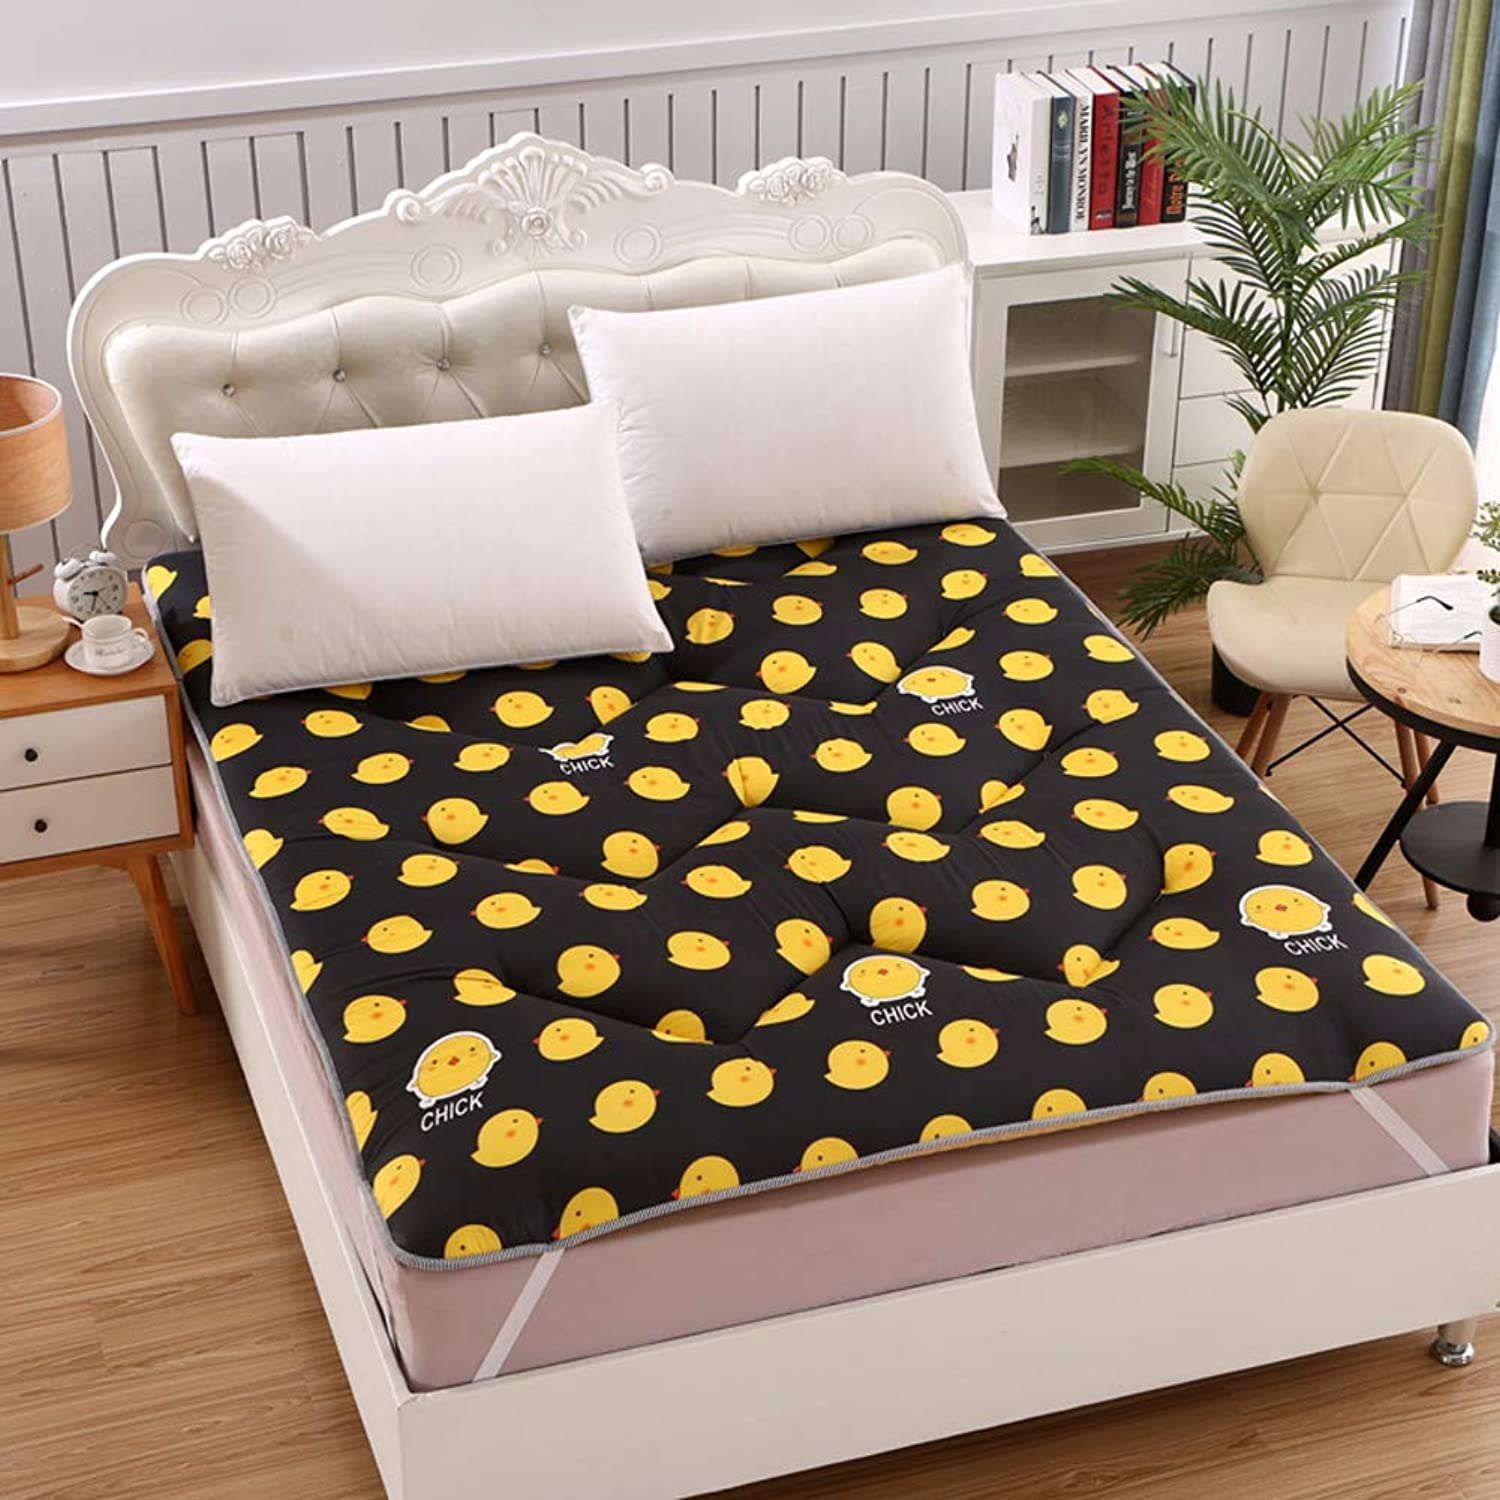 Folding Mattress,Mattress Pad,Hypoallergenic, Student Collapsible for Household Bedroom-F 100x200cm(39x79inch)